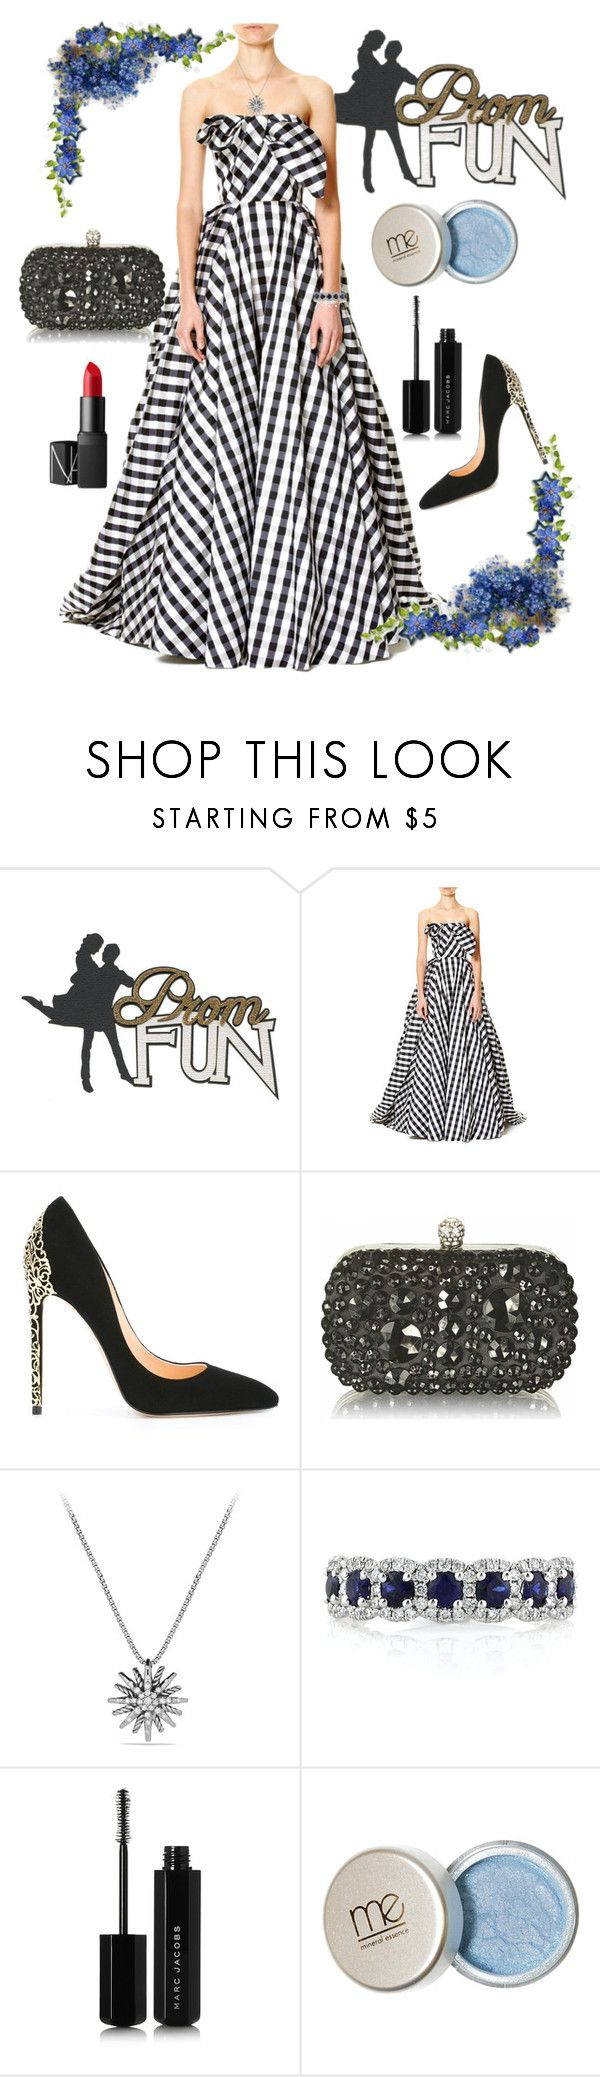 """""""Prom Queen"""" by shirley-de-gannes ❤ liked on Polyvore featuring Carolina Herrera, Cerasella Milano, David Yurman, Mark Broumand, Marc Jacobs and NARS Cosmetics"""